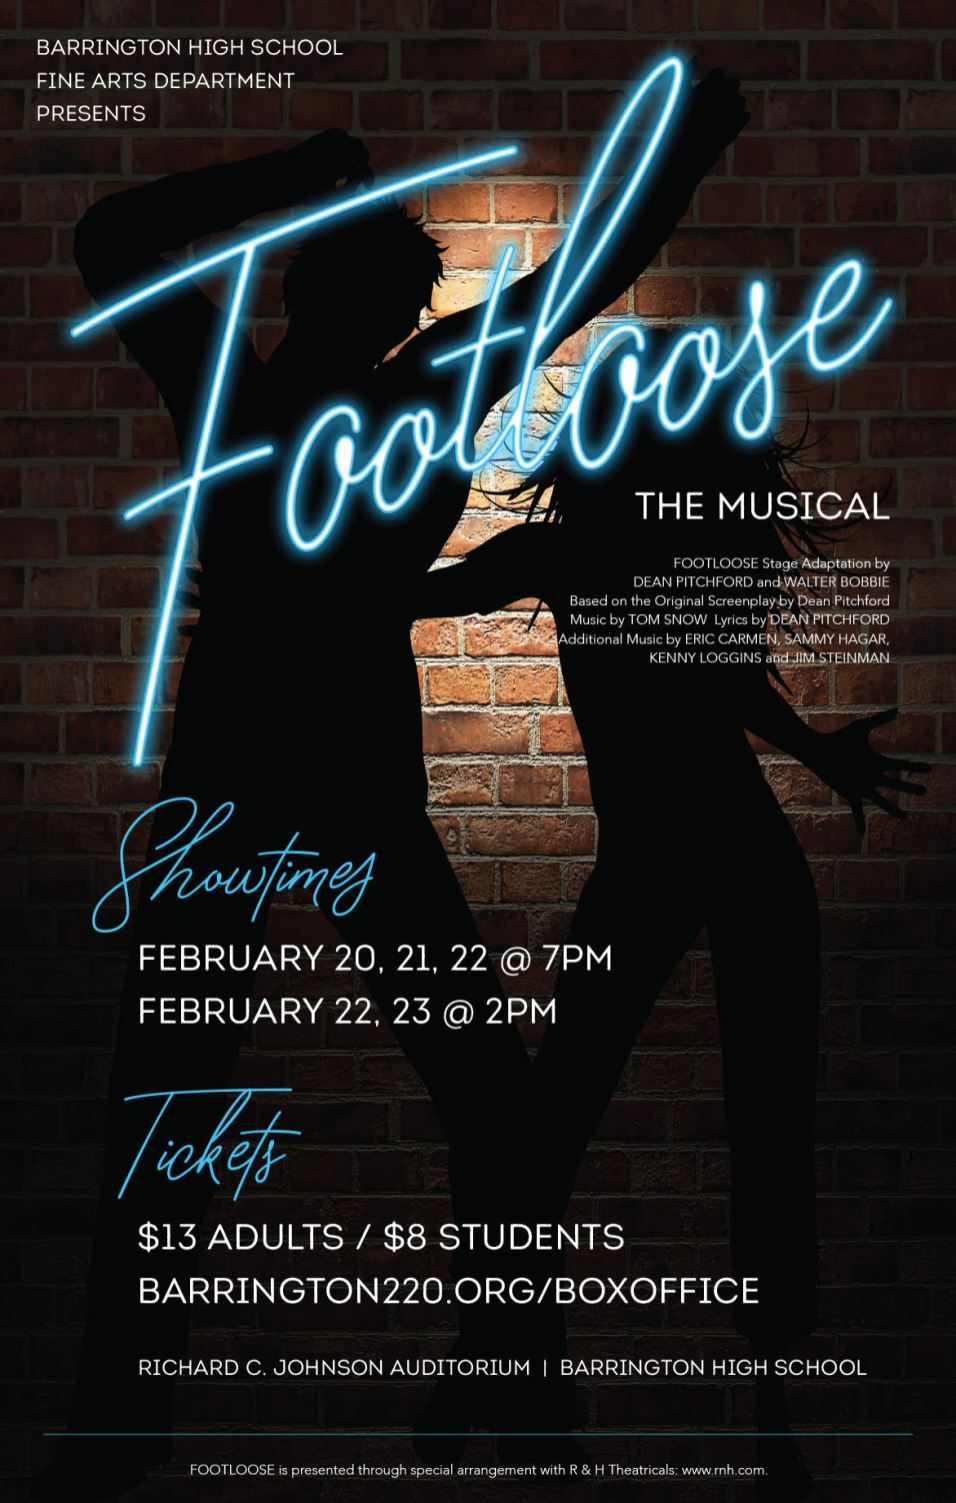 Footloose Musical at Barrington High School